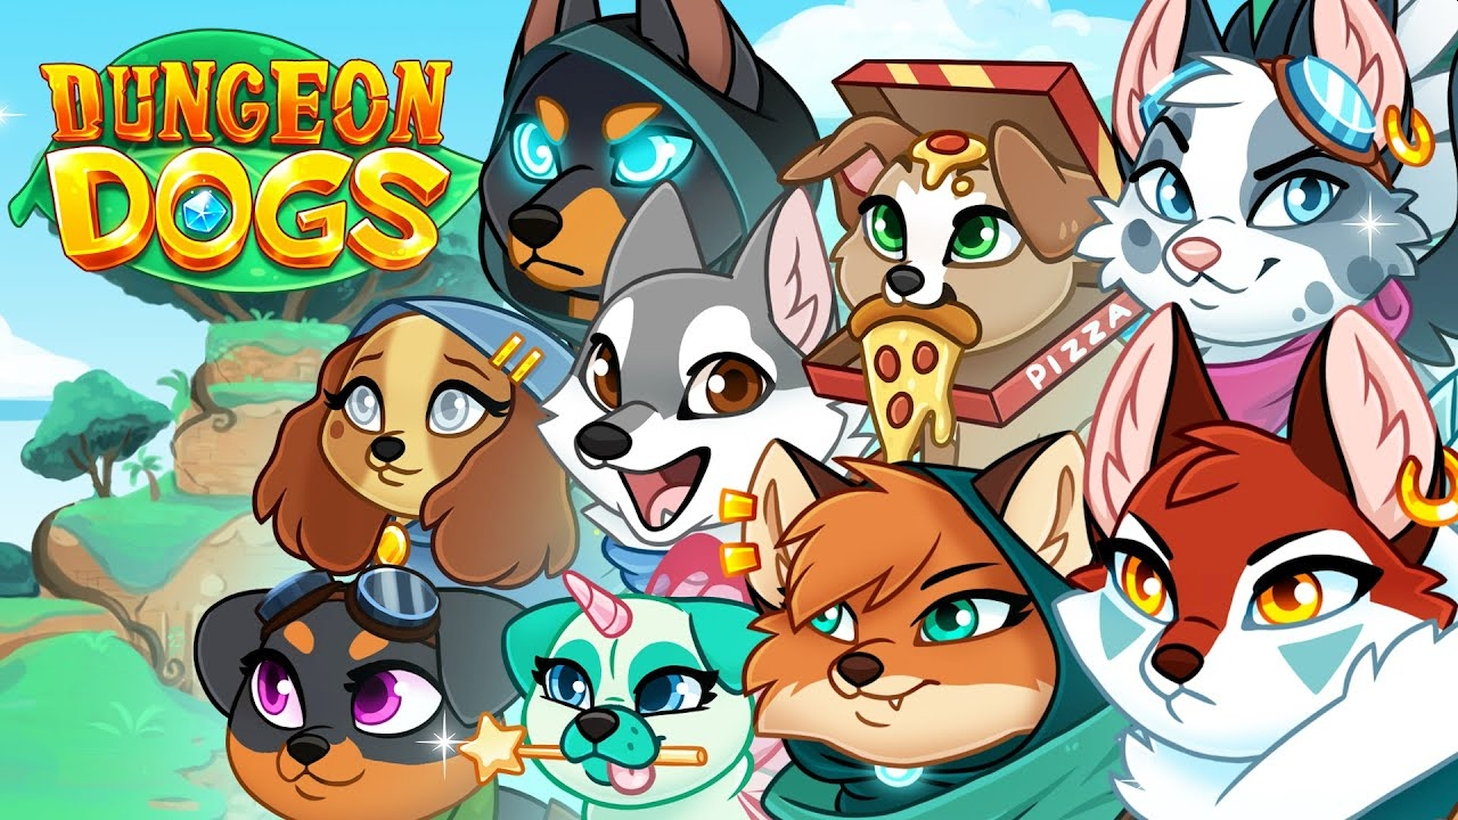 Mobile Idle RPG Game Dungeon Dogs Launches On August 19